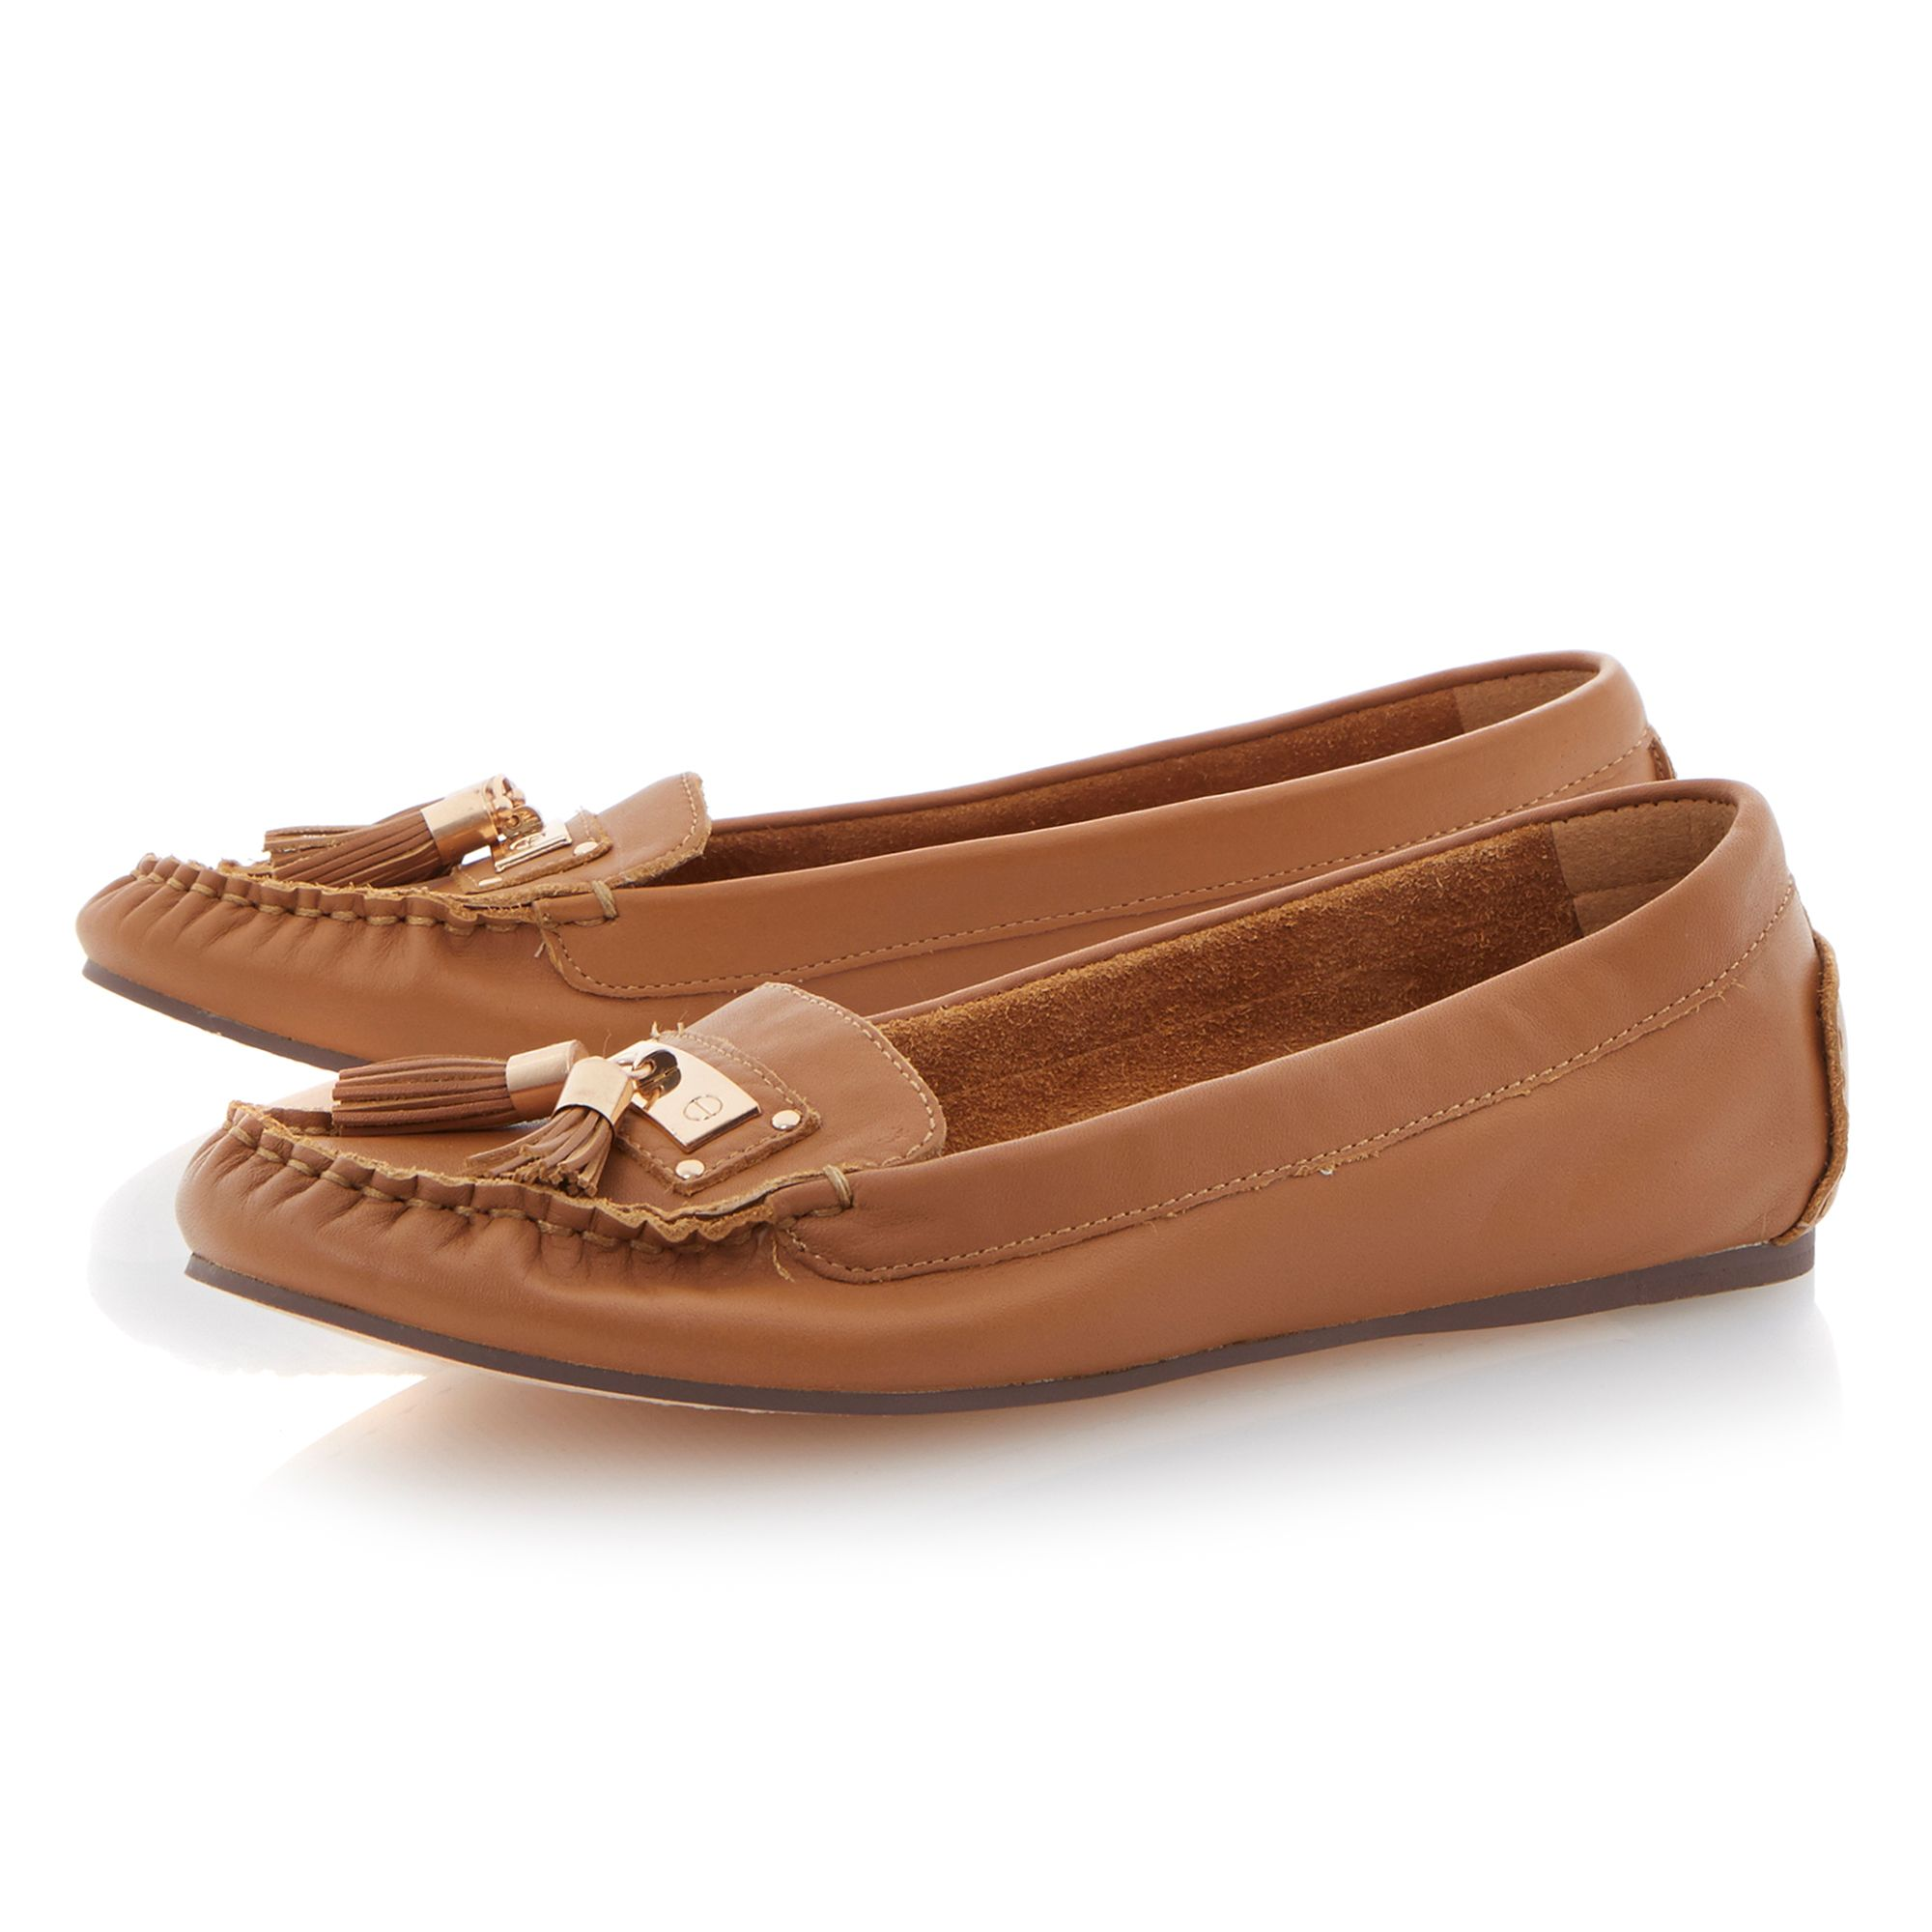 Lotus leather flat round toe loafer shoes